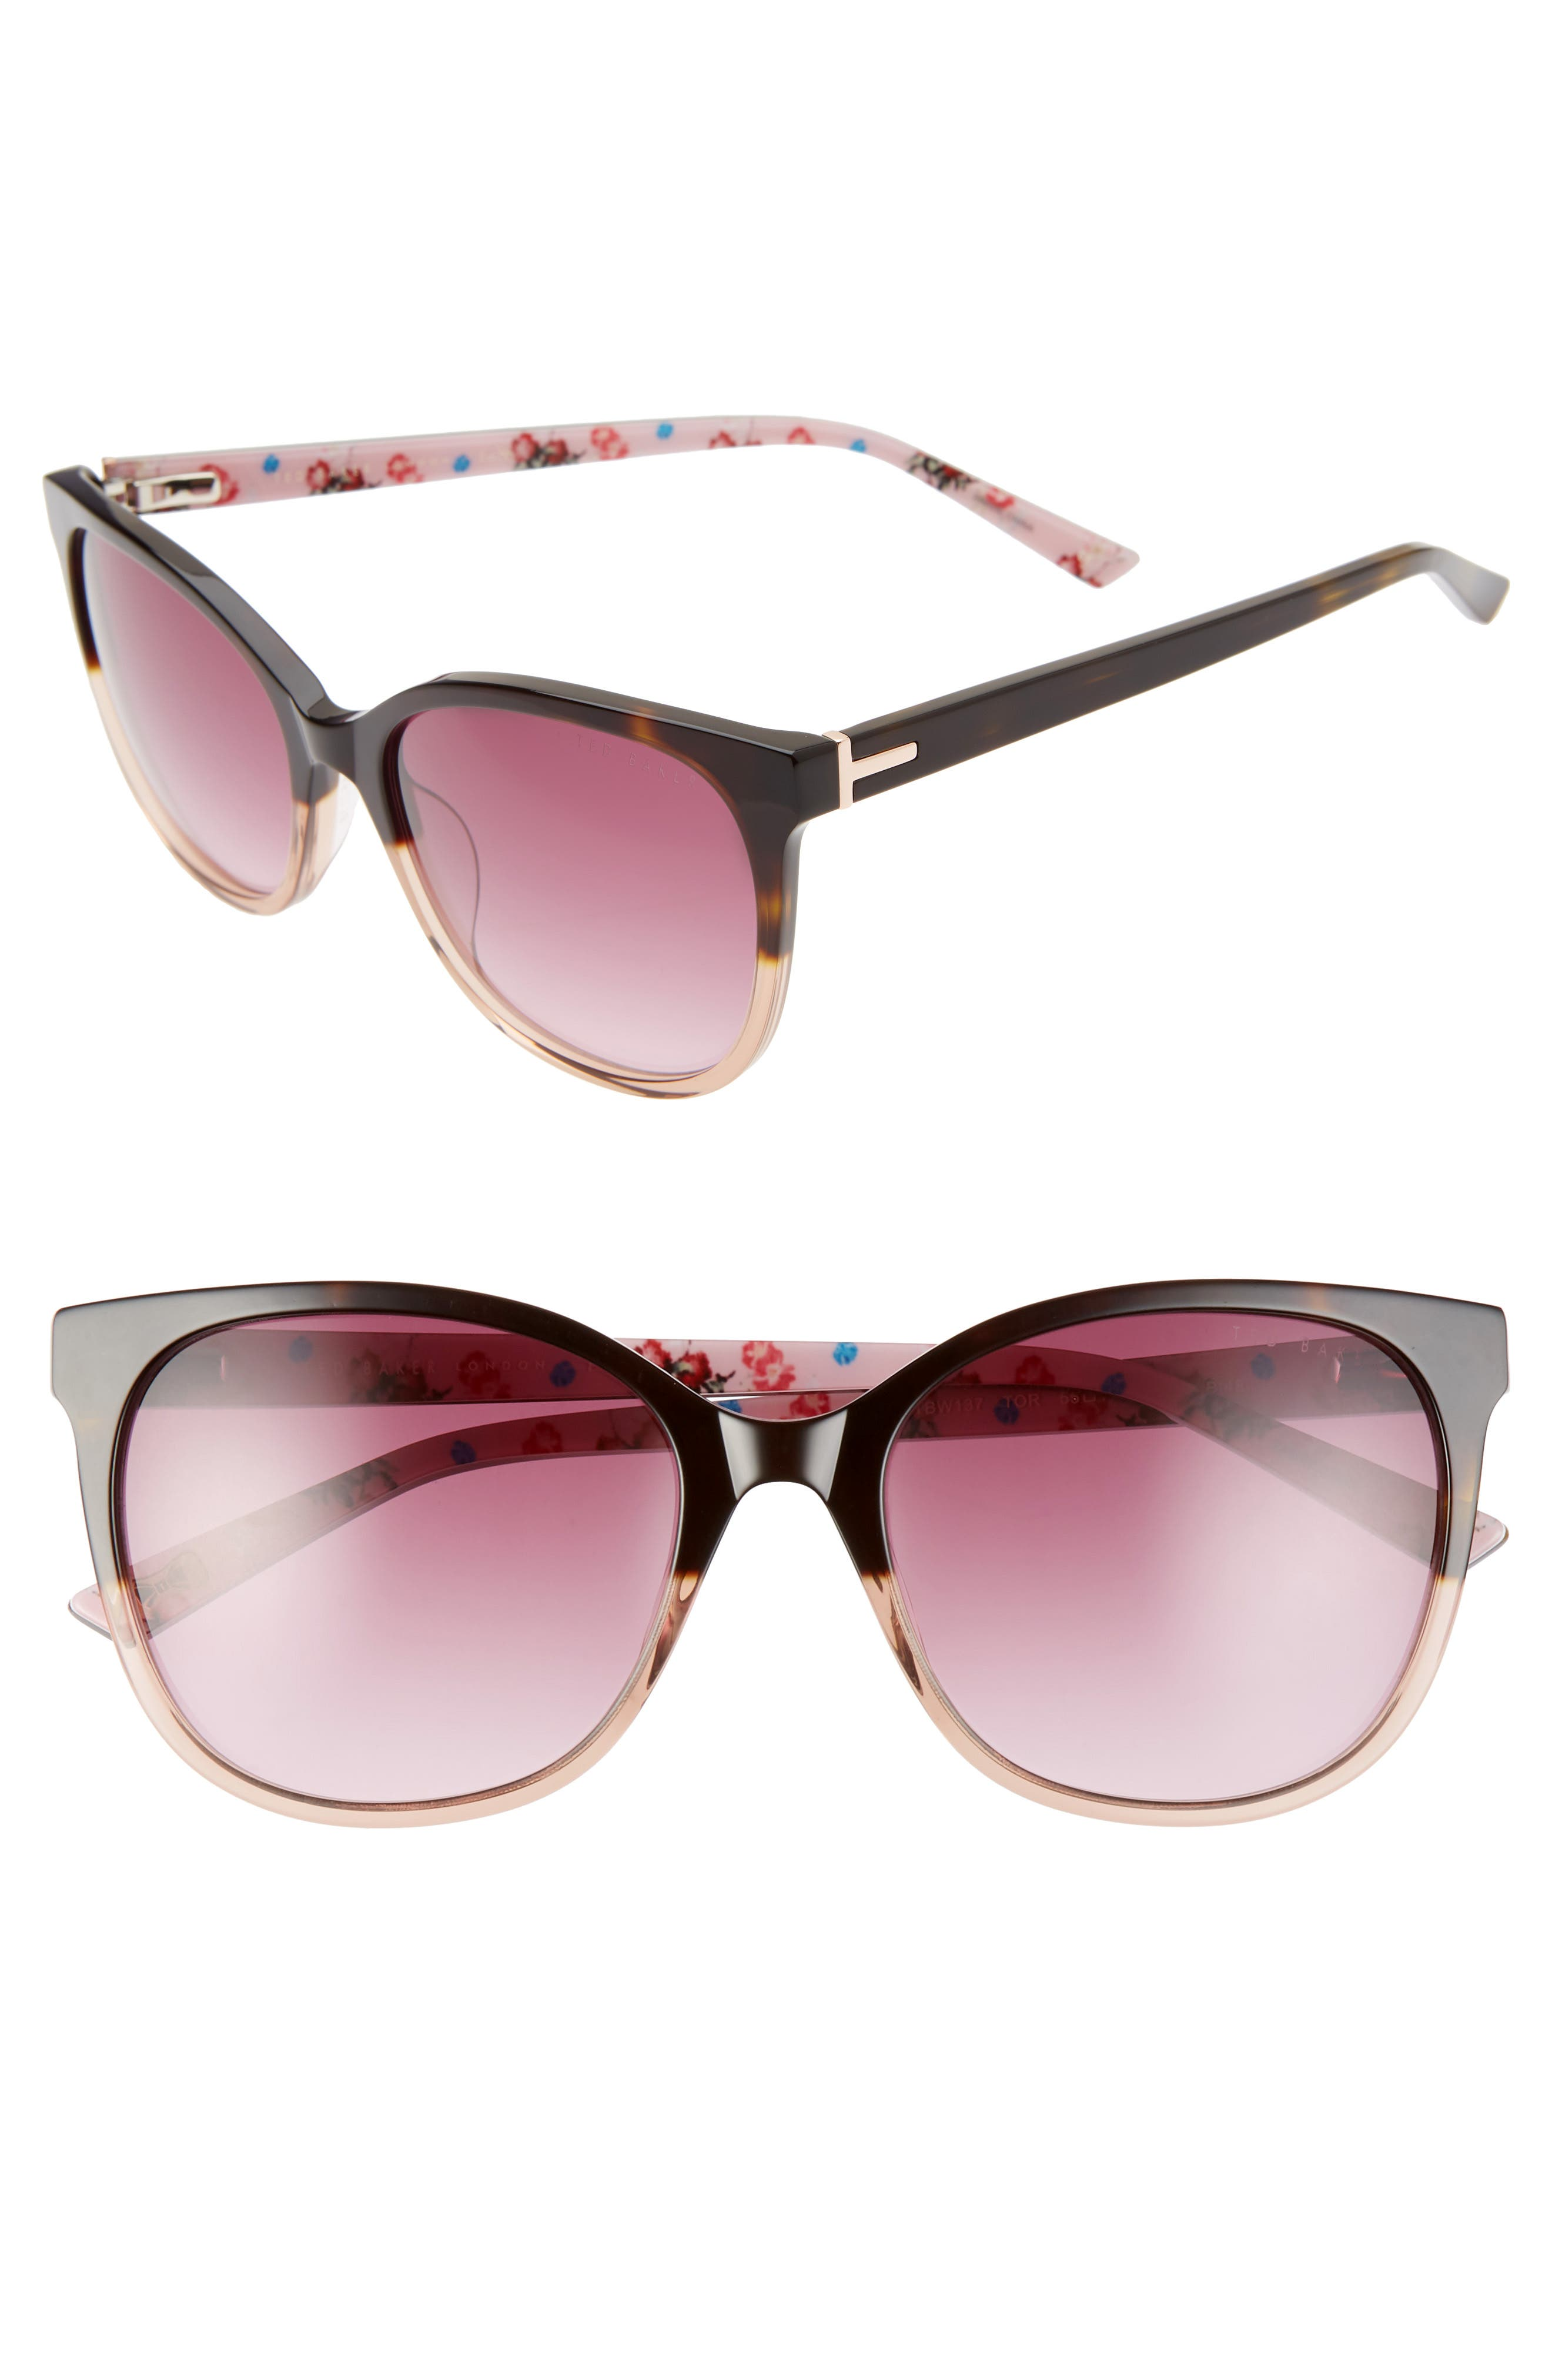 Lenses that are a nice mix of square shaped and round make these sunglasses superchic and versatile for all your looks. Style Name: Ted Baker London 55mm Sunglasses. Style Number: 5987443. Available in stores.